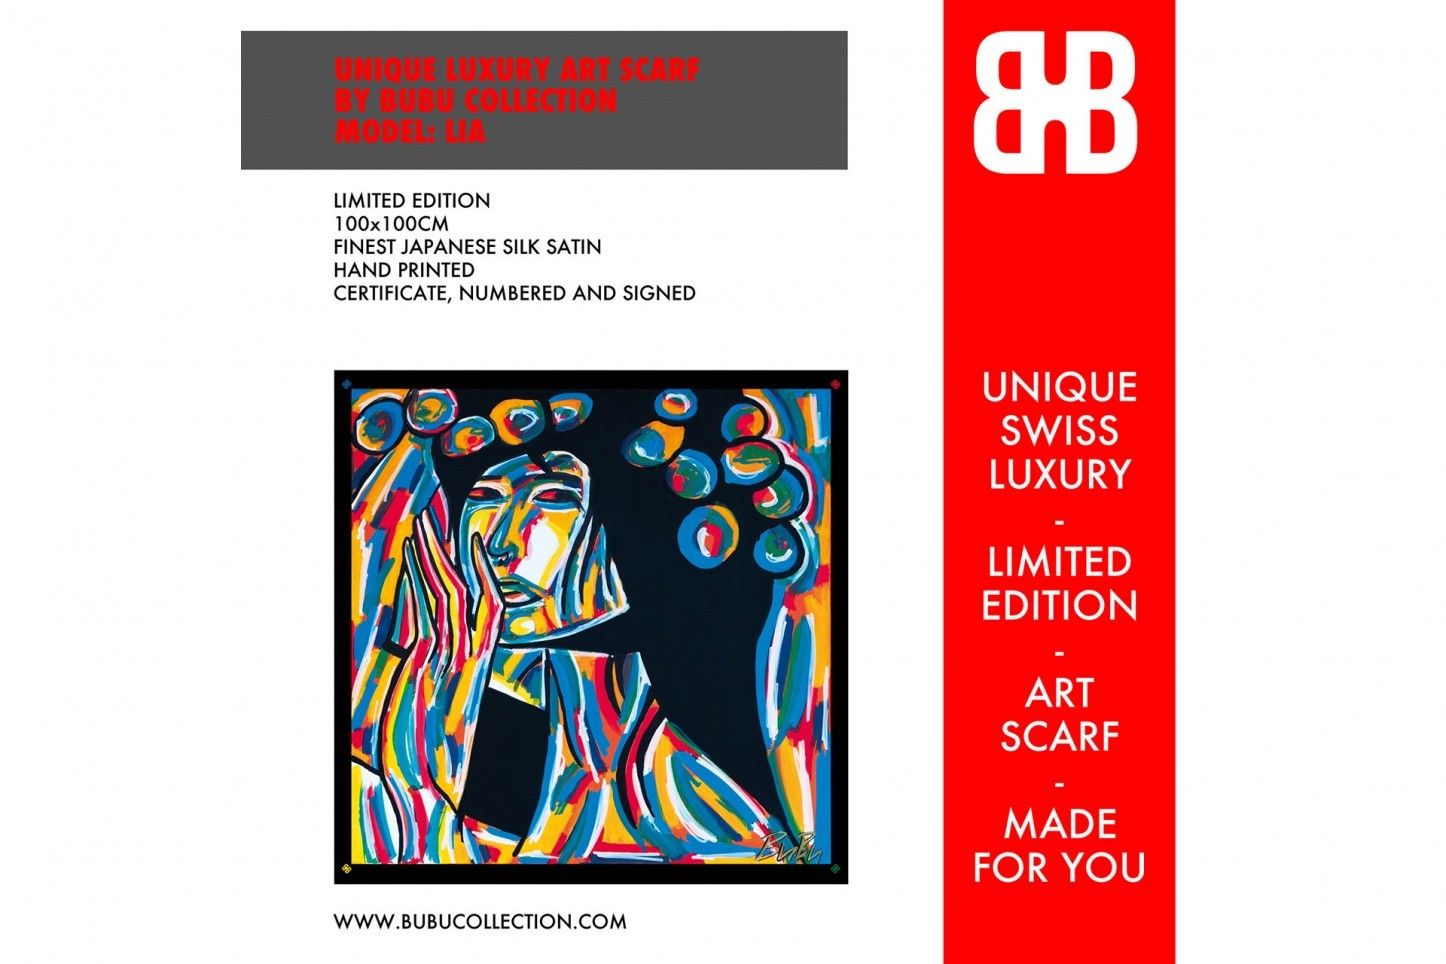 BuBu Collection - The Art of Living Gallery